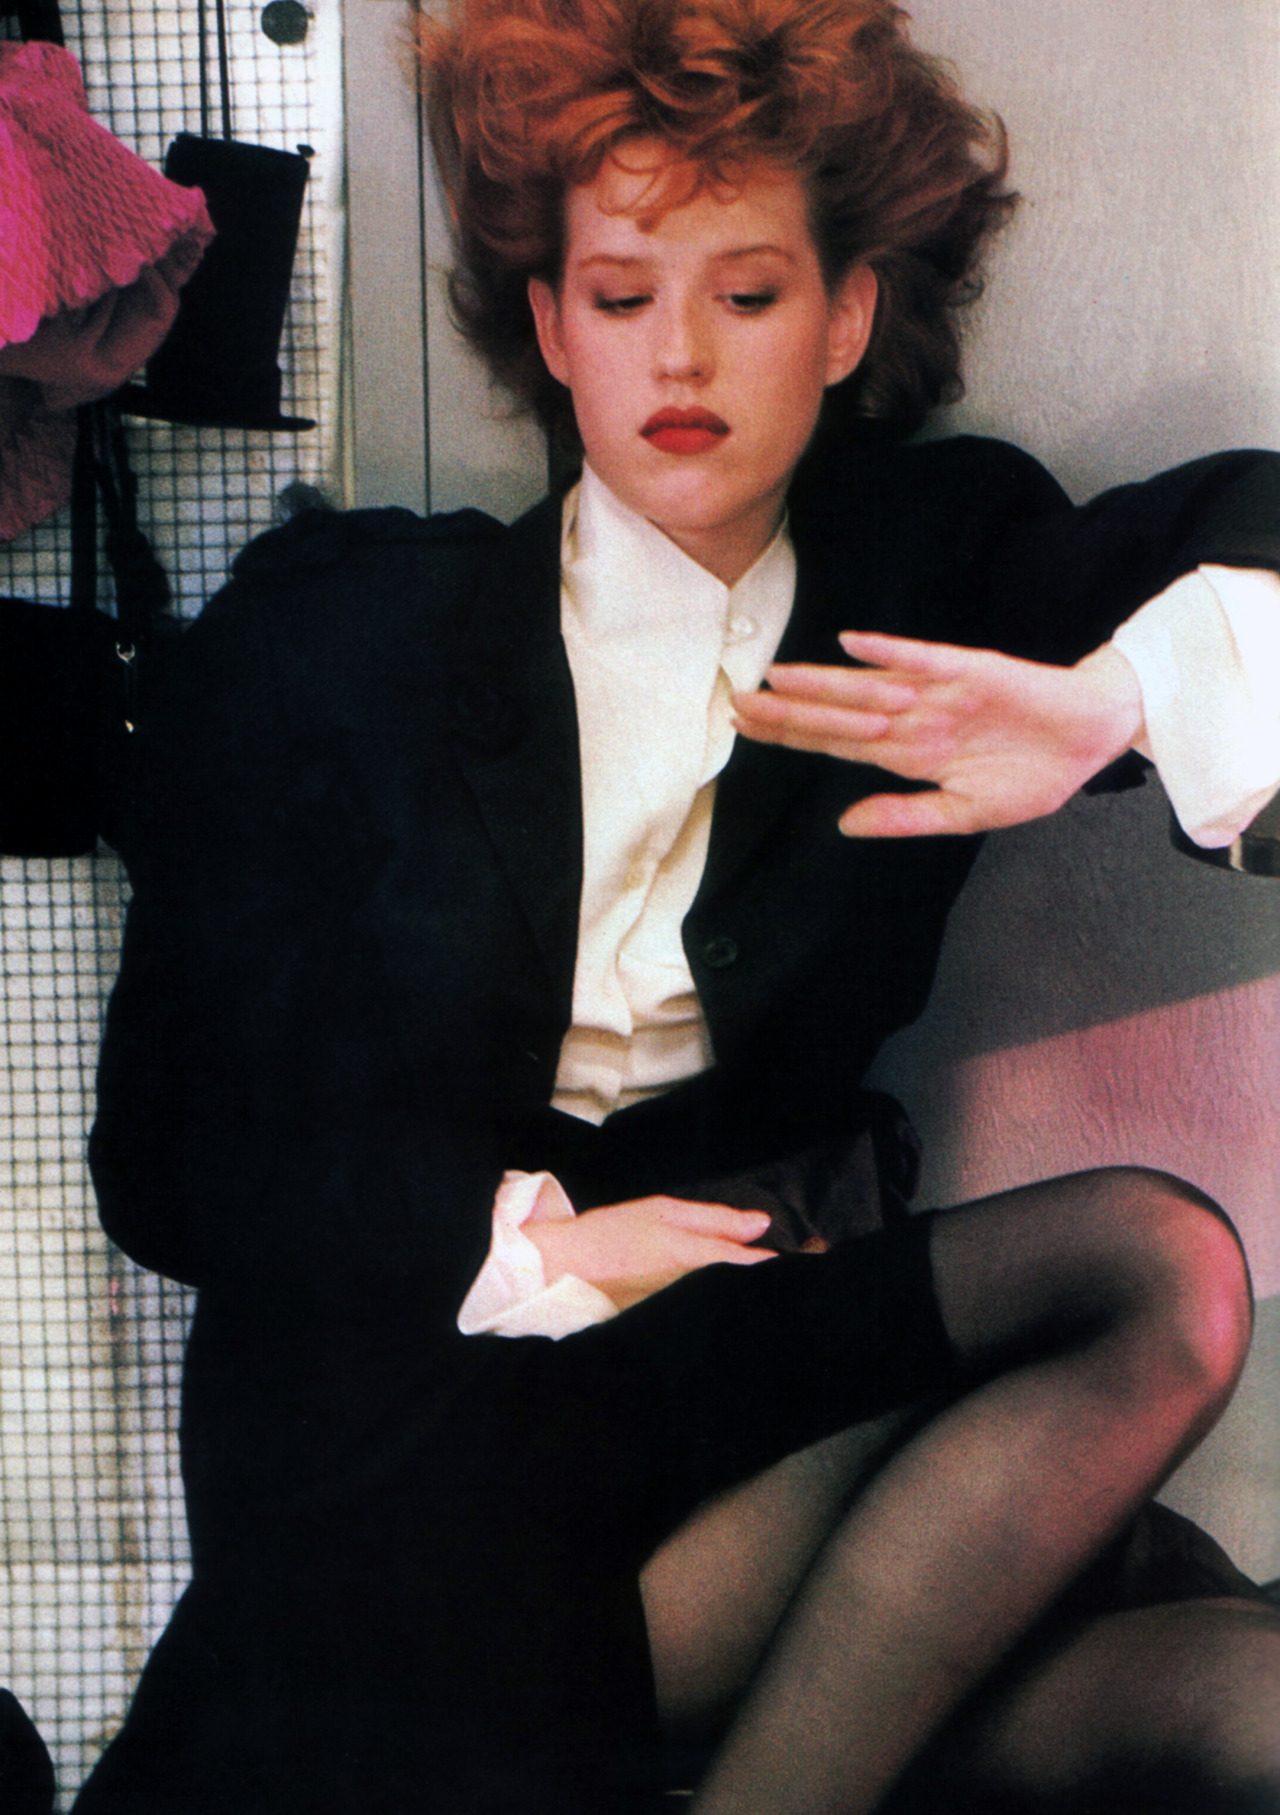 periodicult:  Molly Ringwald, photographed by Sheila Metzner for American Vogue, September 1987. Clothing by John Galliano.